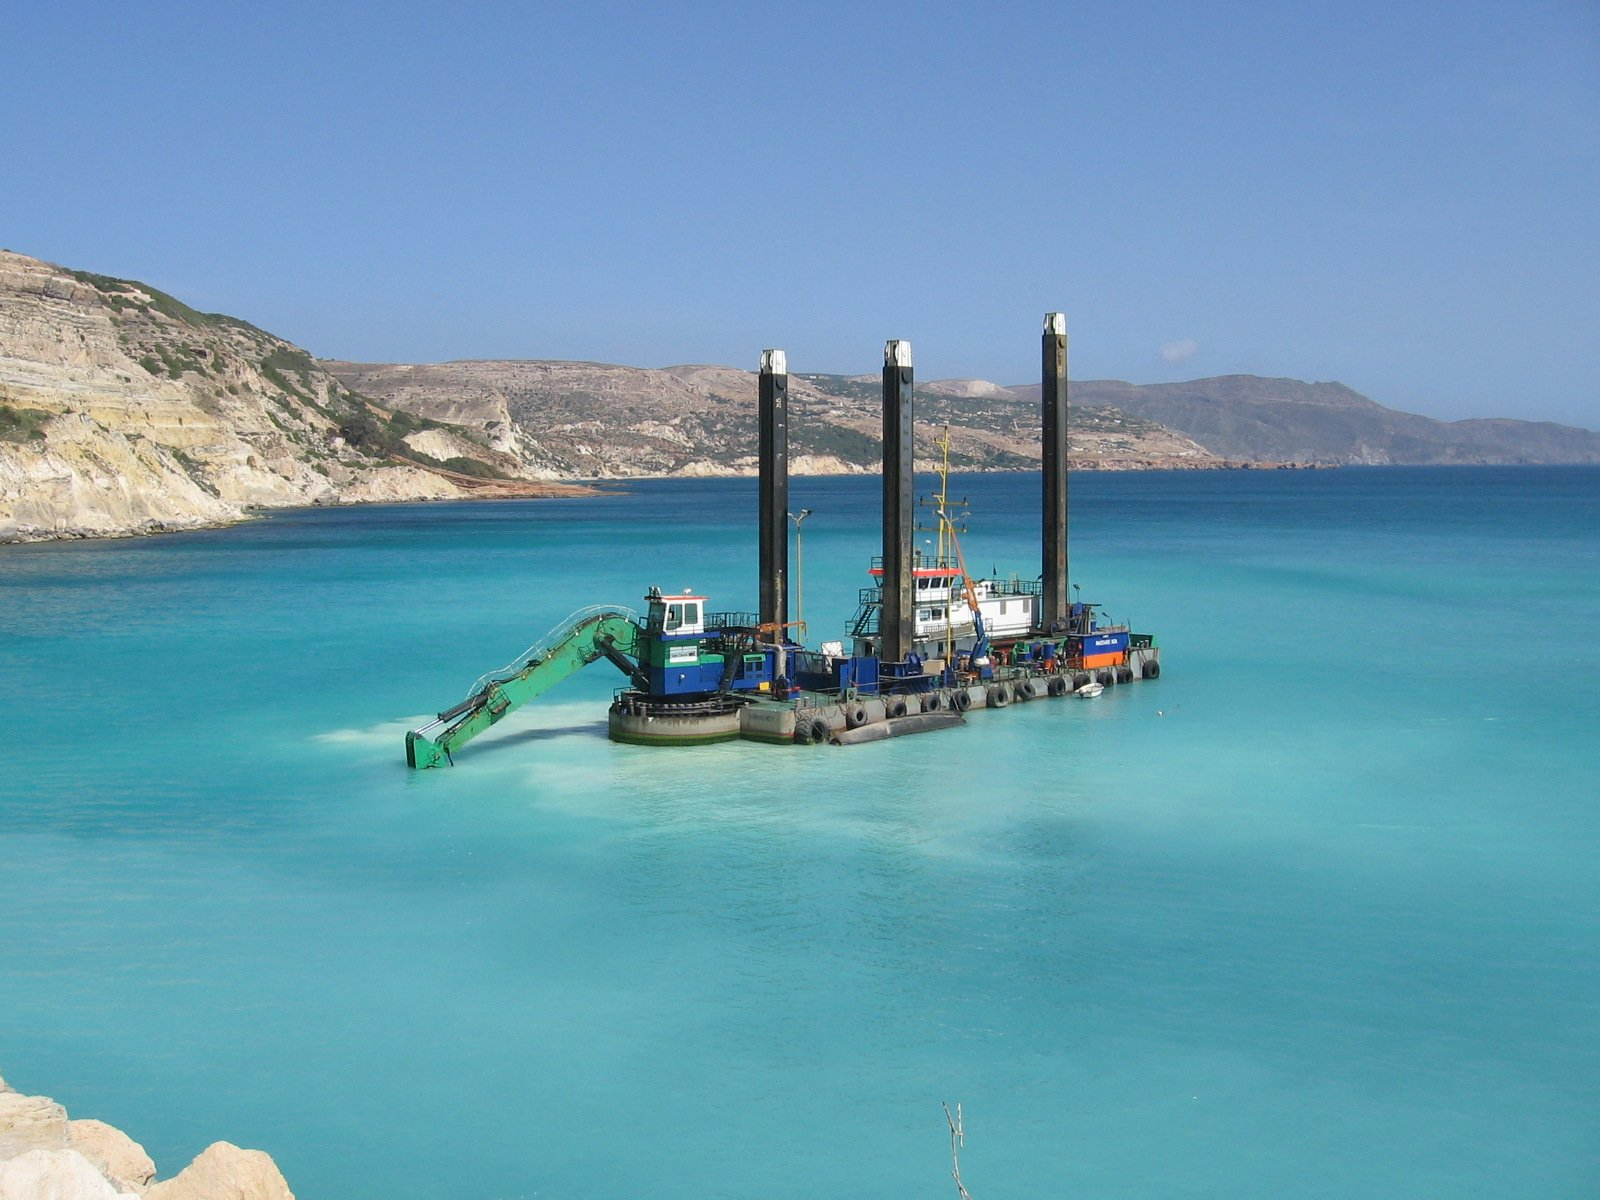 backhoe dredging consultancy